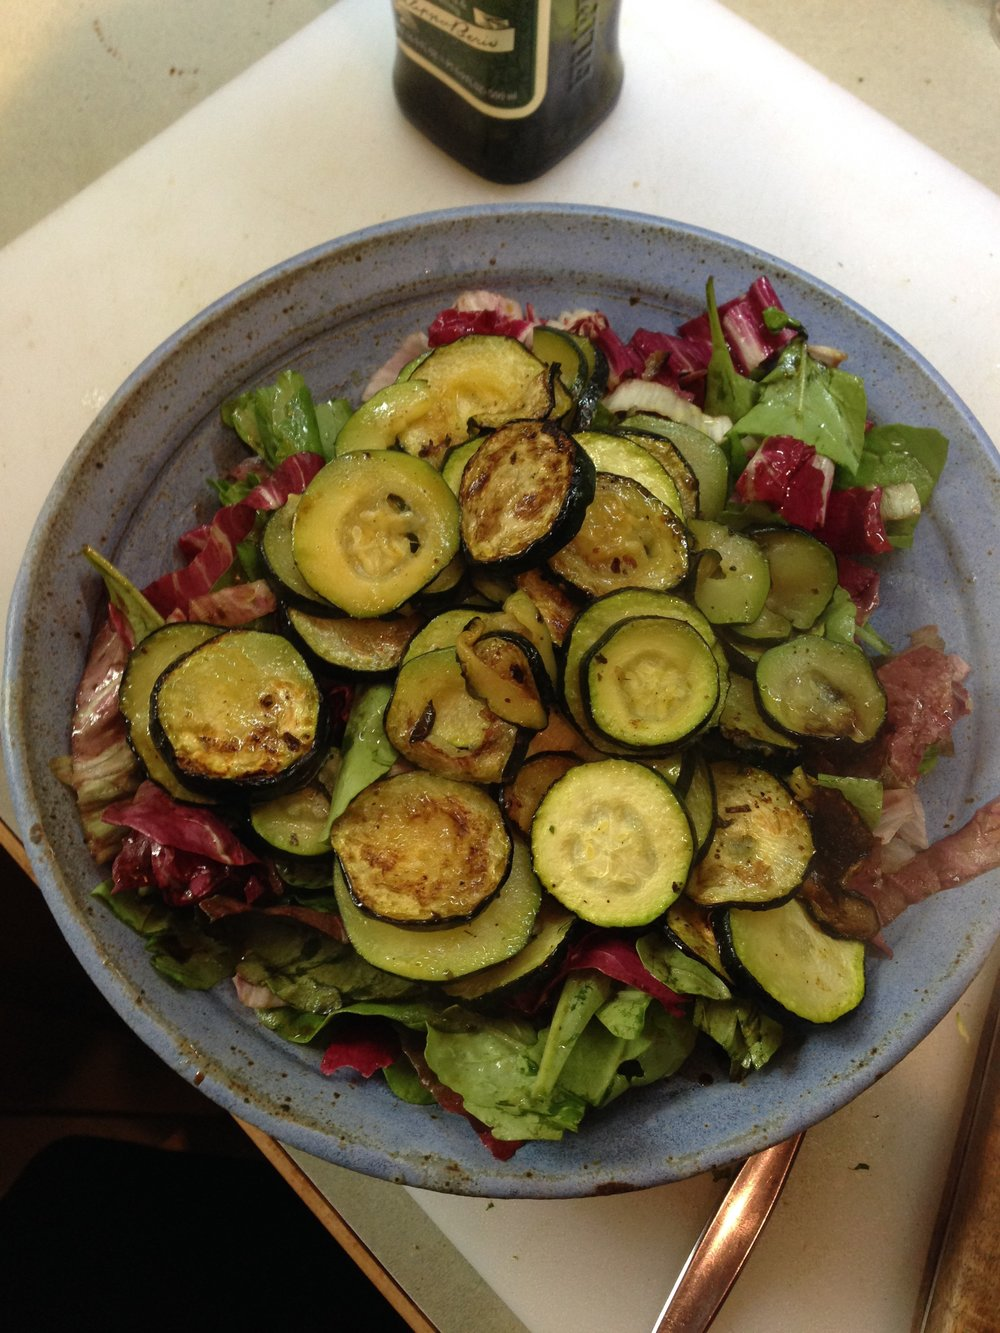 oven-roasted zucchini over a salad of arugula and sauted radicchio